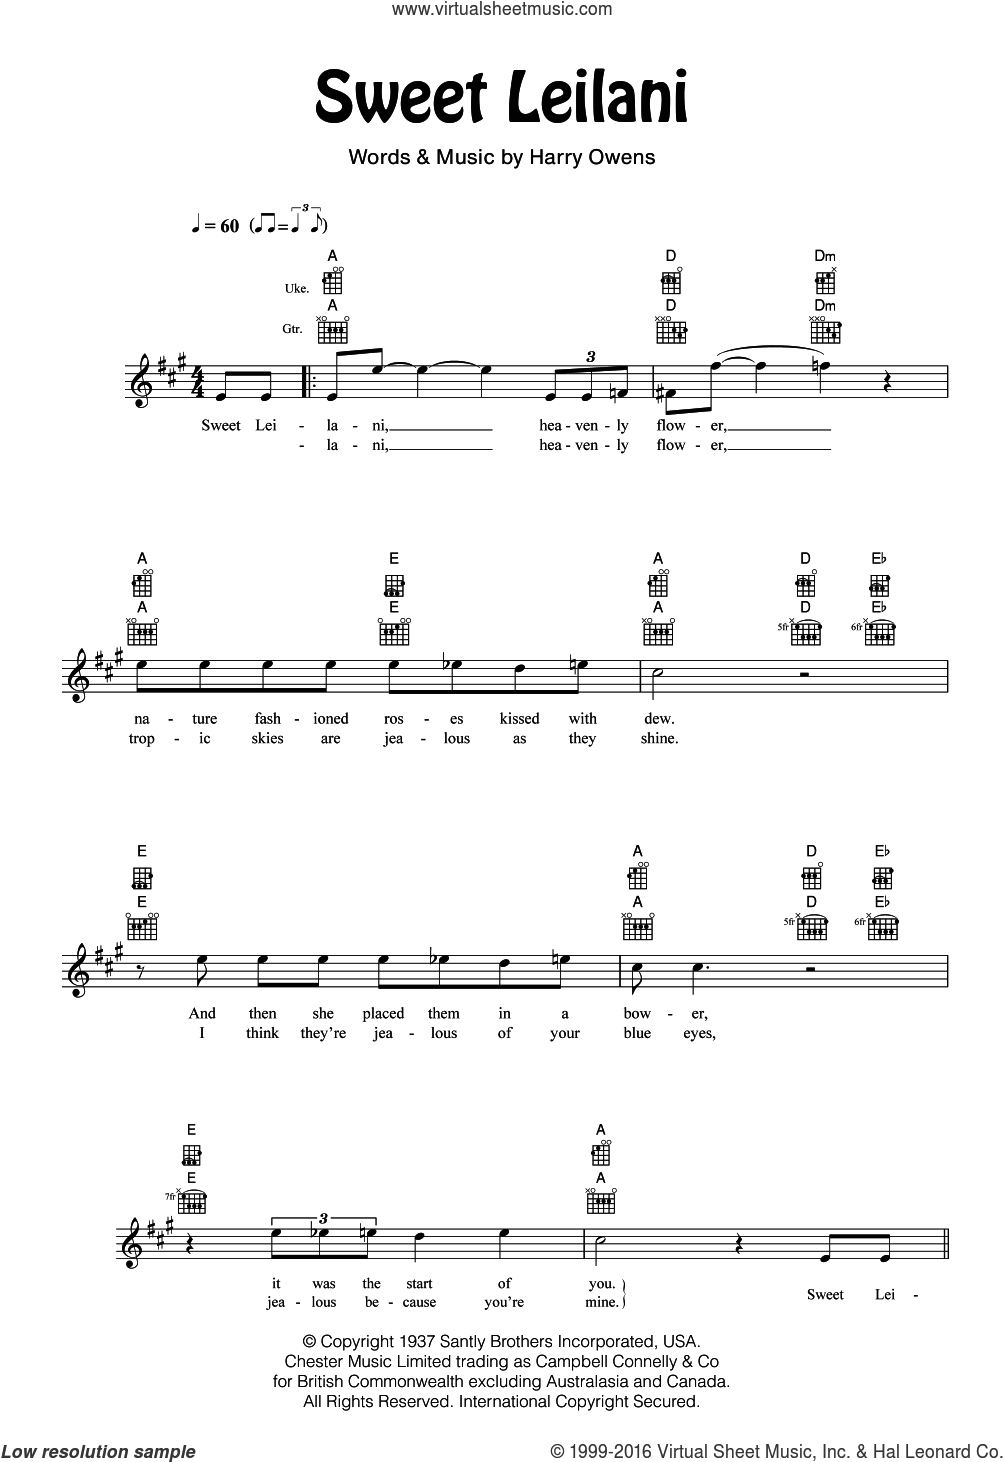 Crosby - Sweet Leilani sheet music for ukulele [PDF]